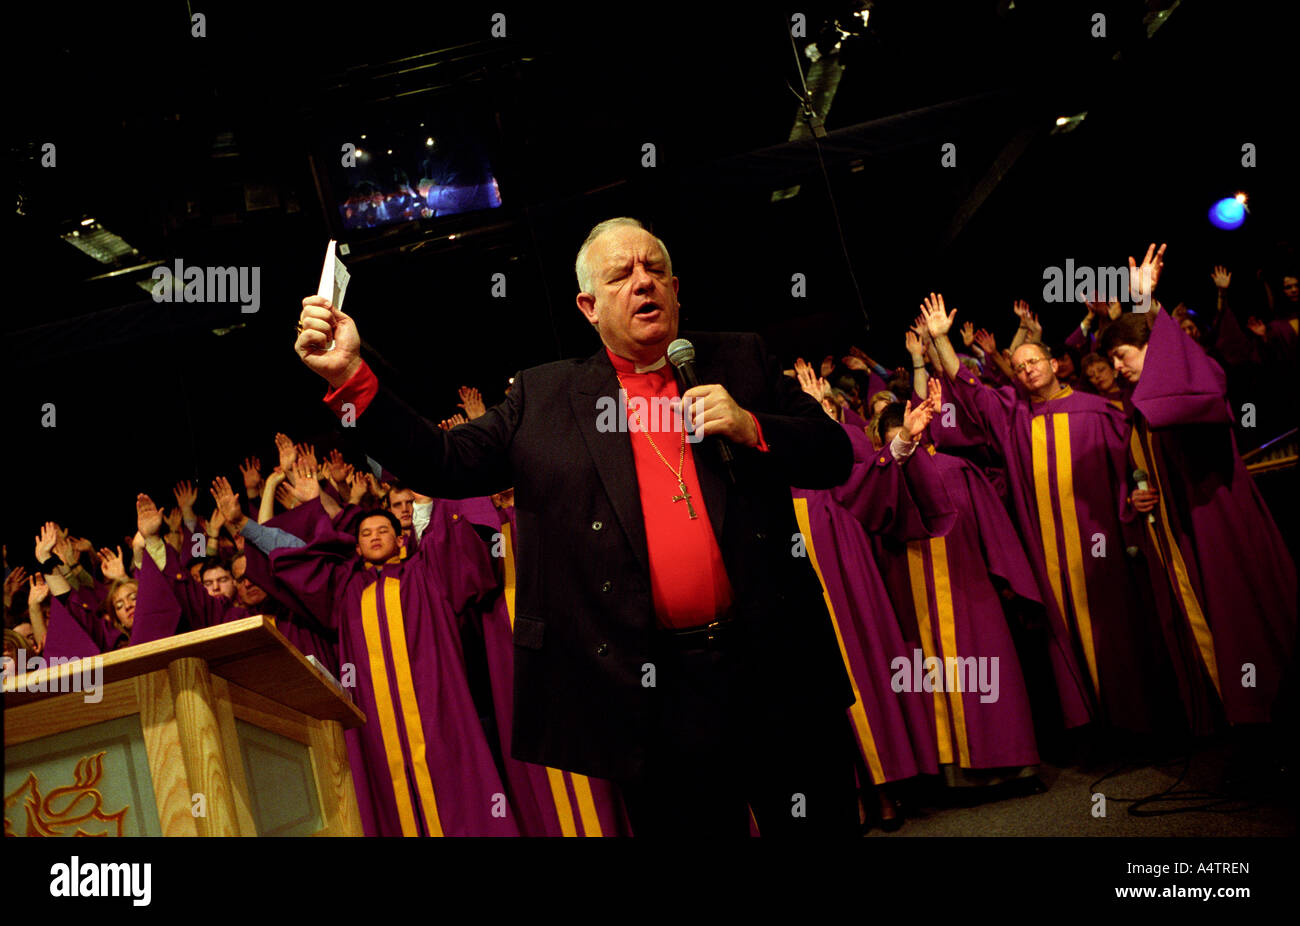 PENIEL PENTECOSTAL CHURCH BRENTWOOD ESSEX ENGLAND - Stock Image